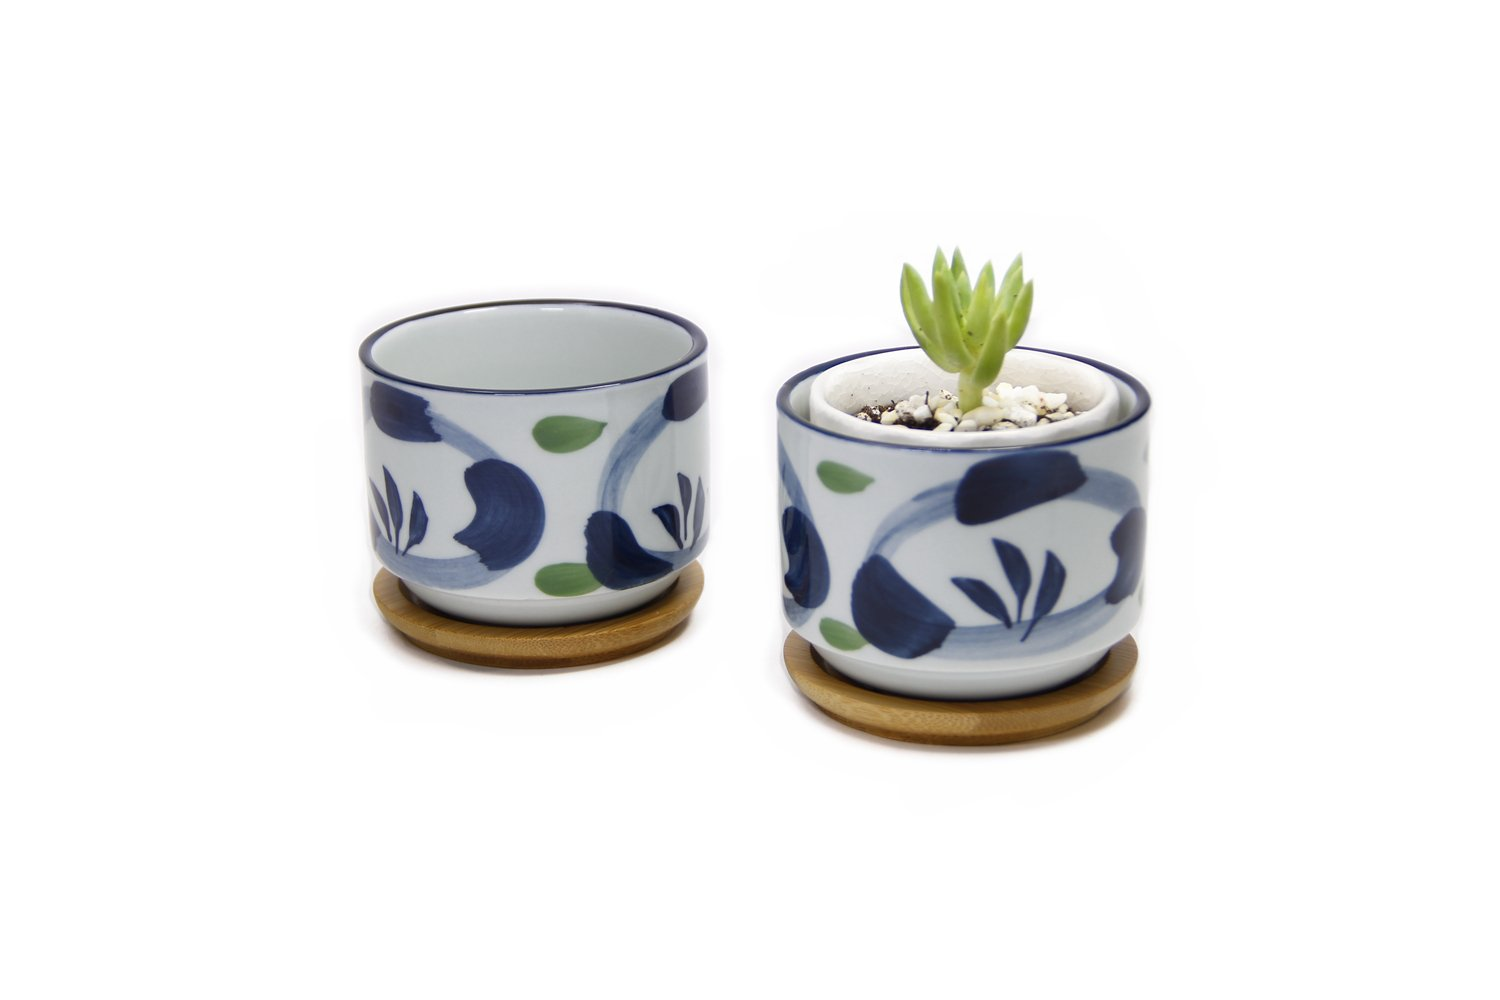 Goldblue Ceramic Small Succulent Pots 3.1Inch Japanese Style Succulent Planter Pots with Bamboo Drip Tray Pack of 2/Orchid by Goldblue